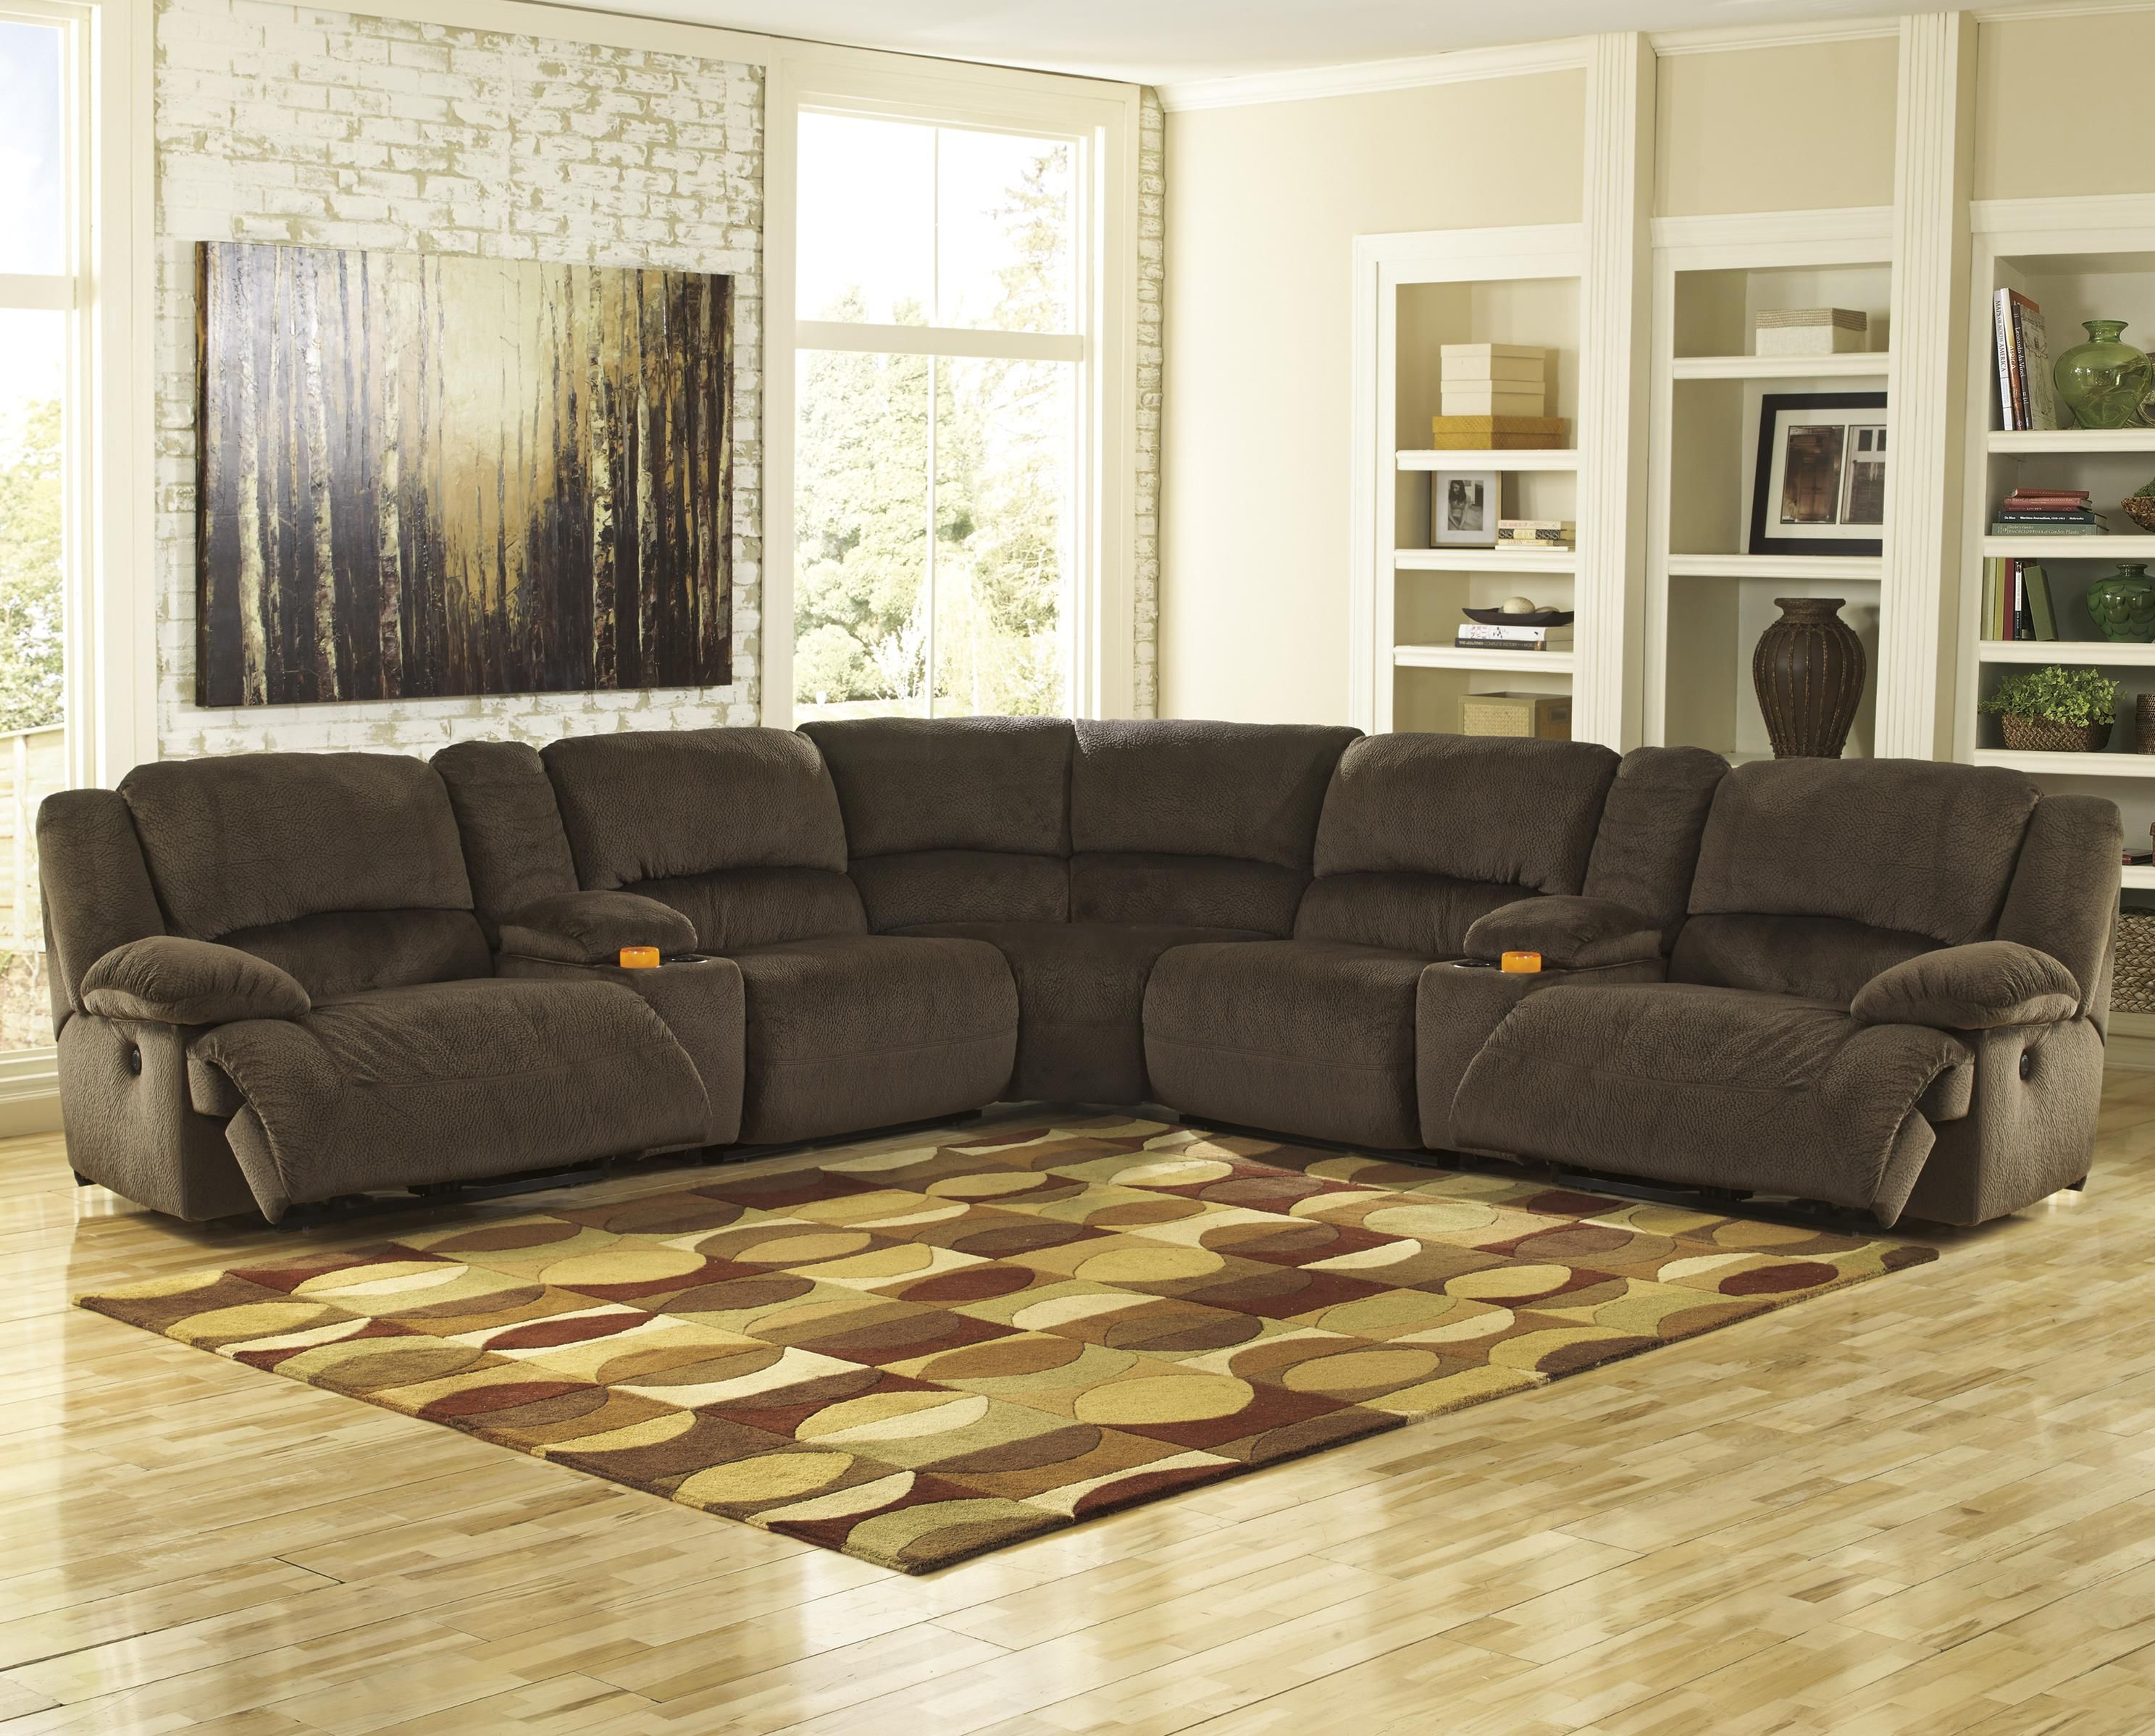 pin by missy perlic on things to buy home reclining sectional rh pinterest com